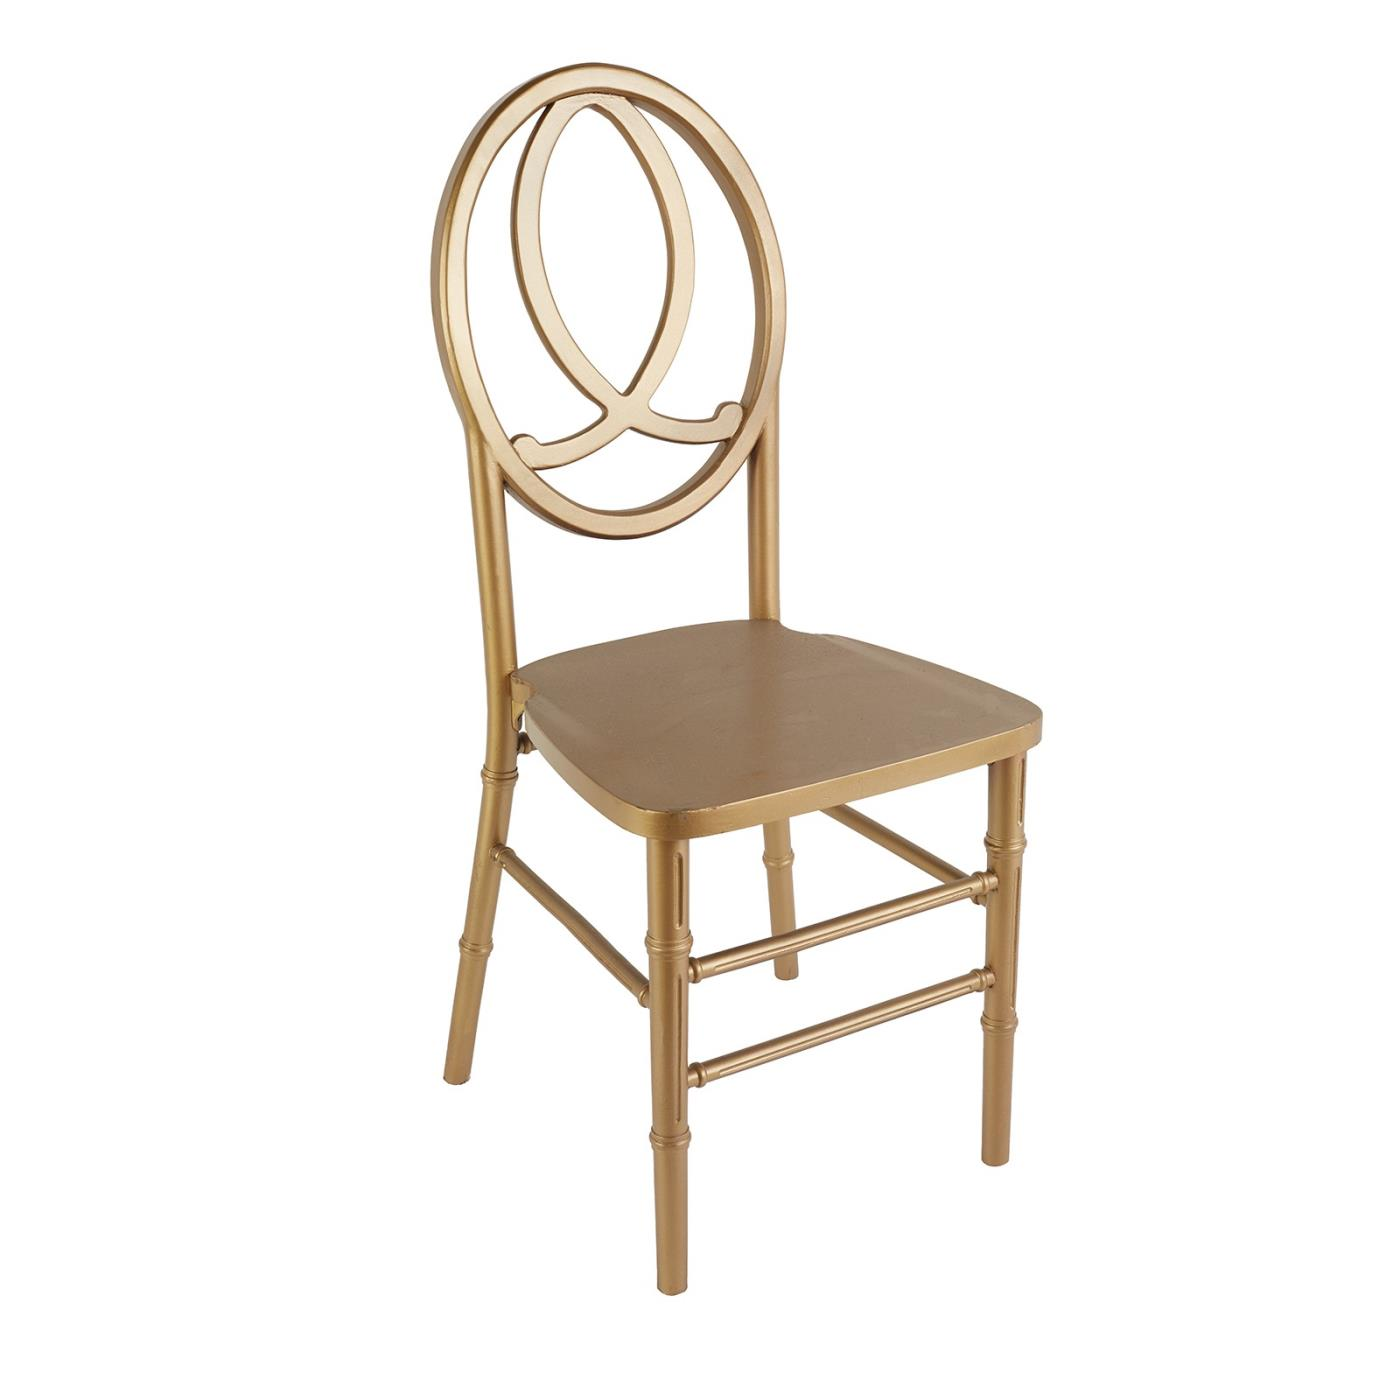 Omega Chair - Gold